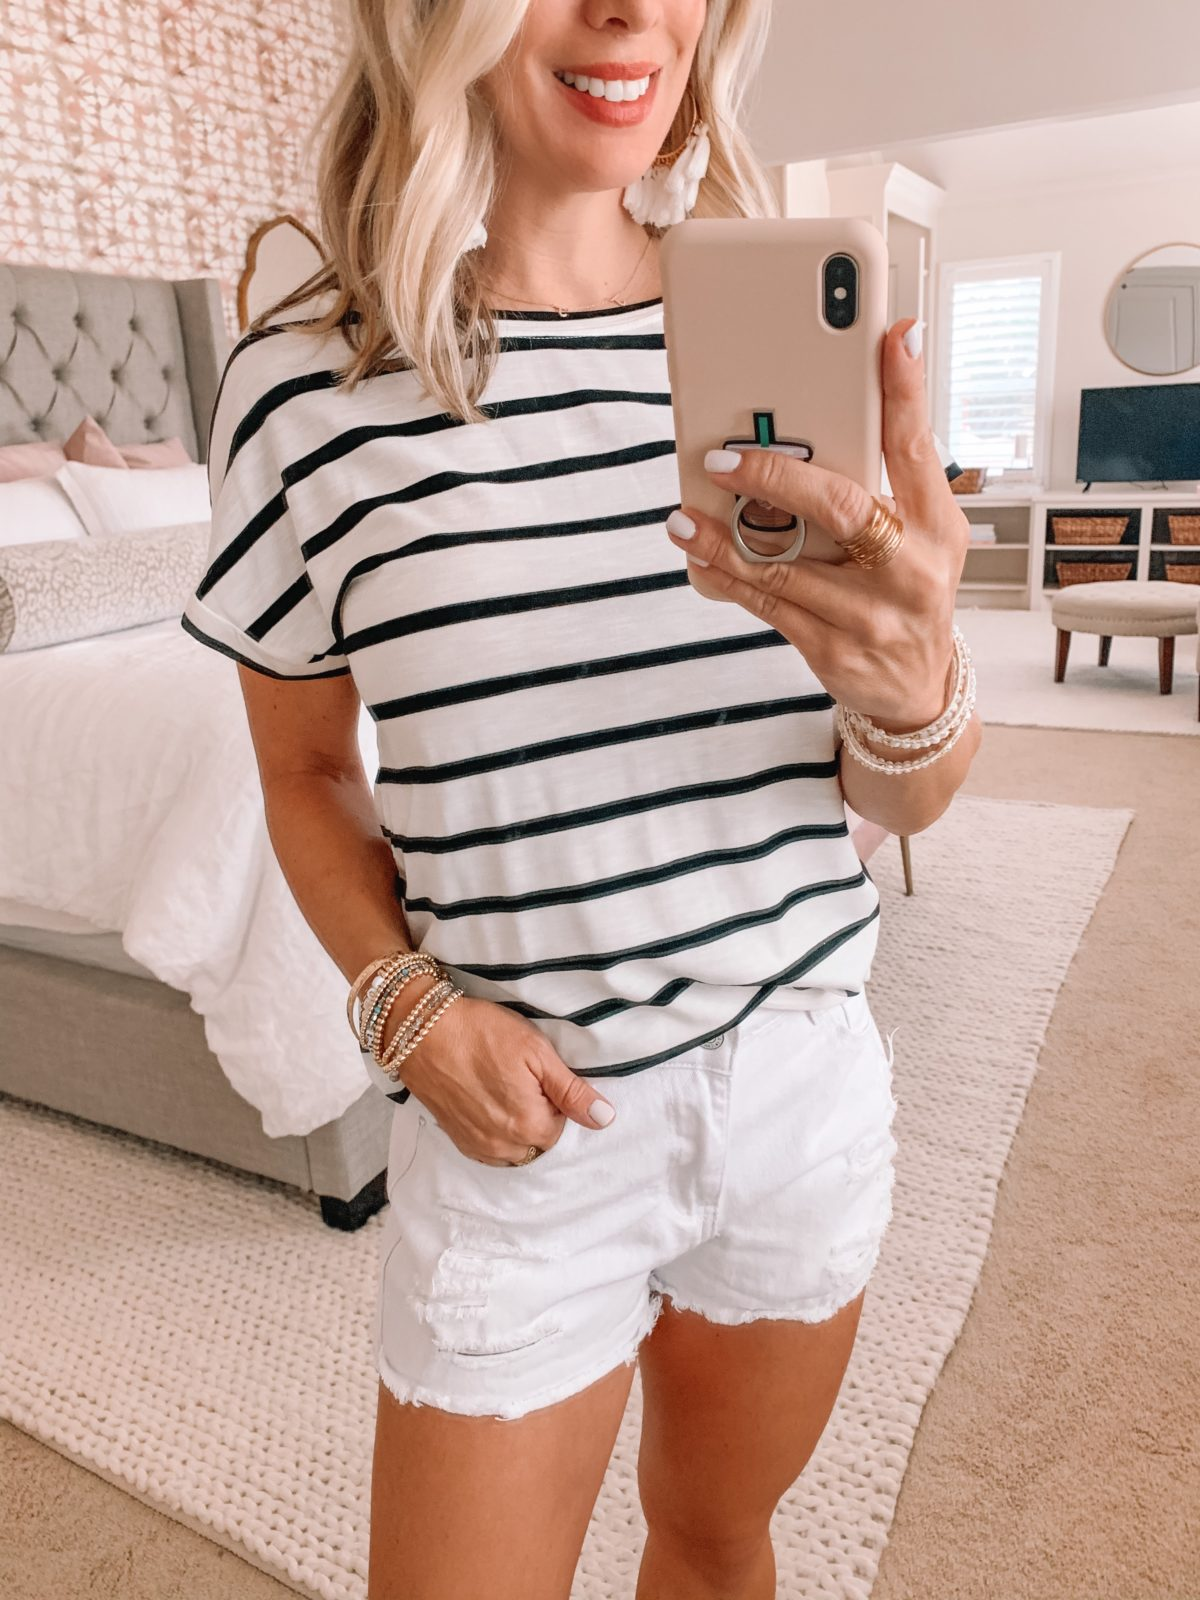 Amazon Fashion Finds, Stripe Tee, Shorts